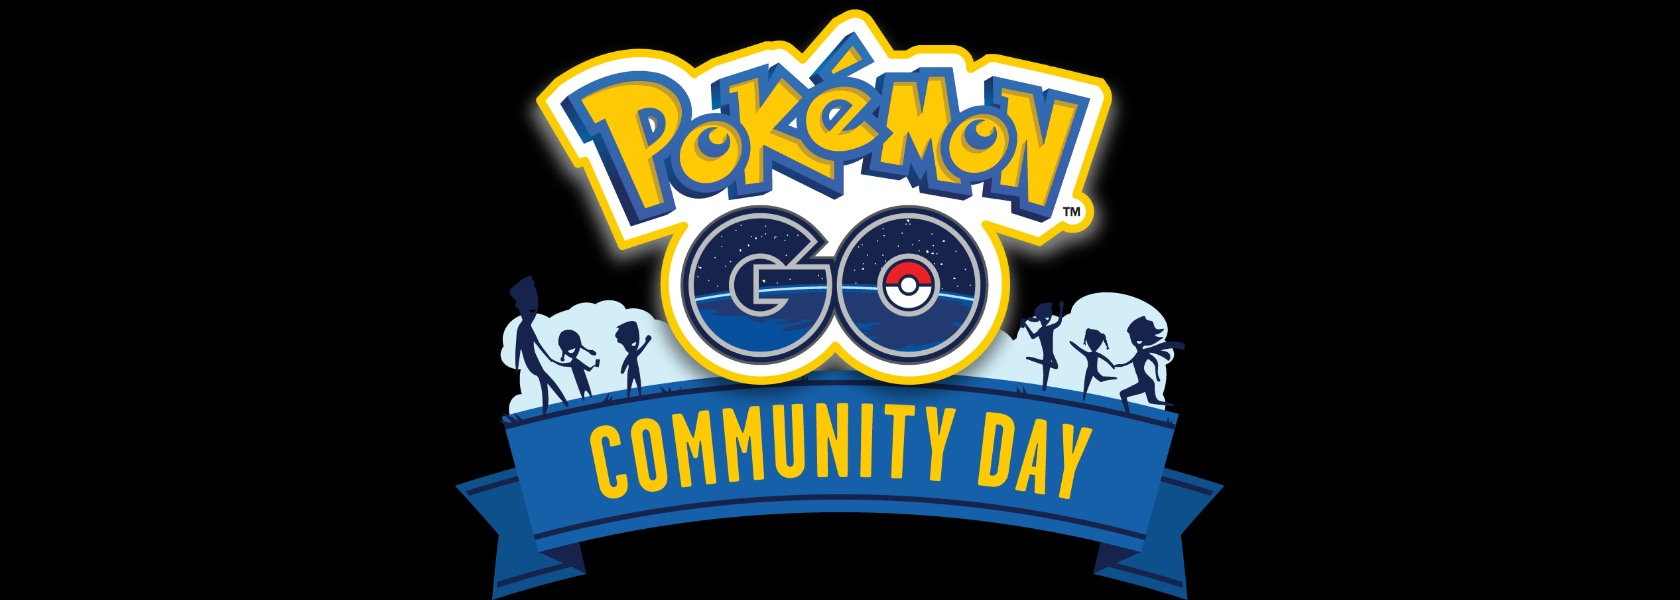 Pokémon Go Community Day in oktober draait alles om Trapinch